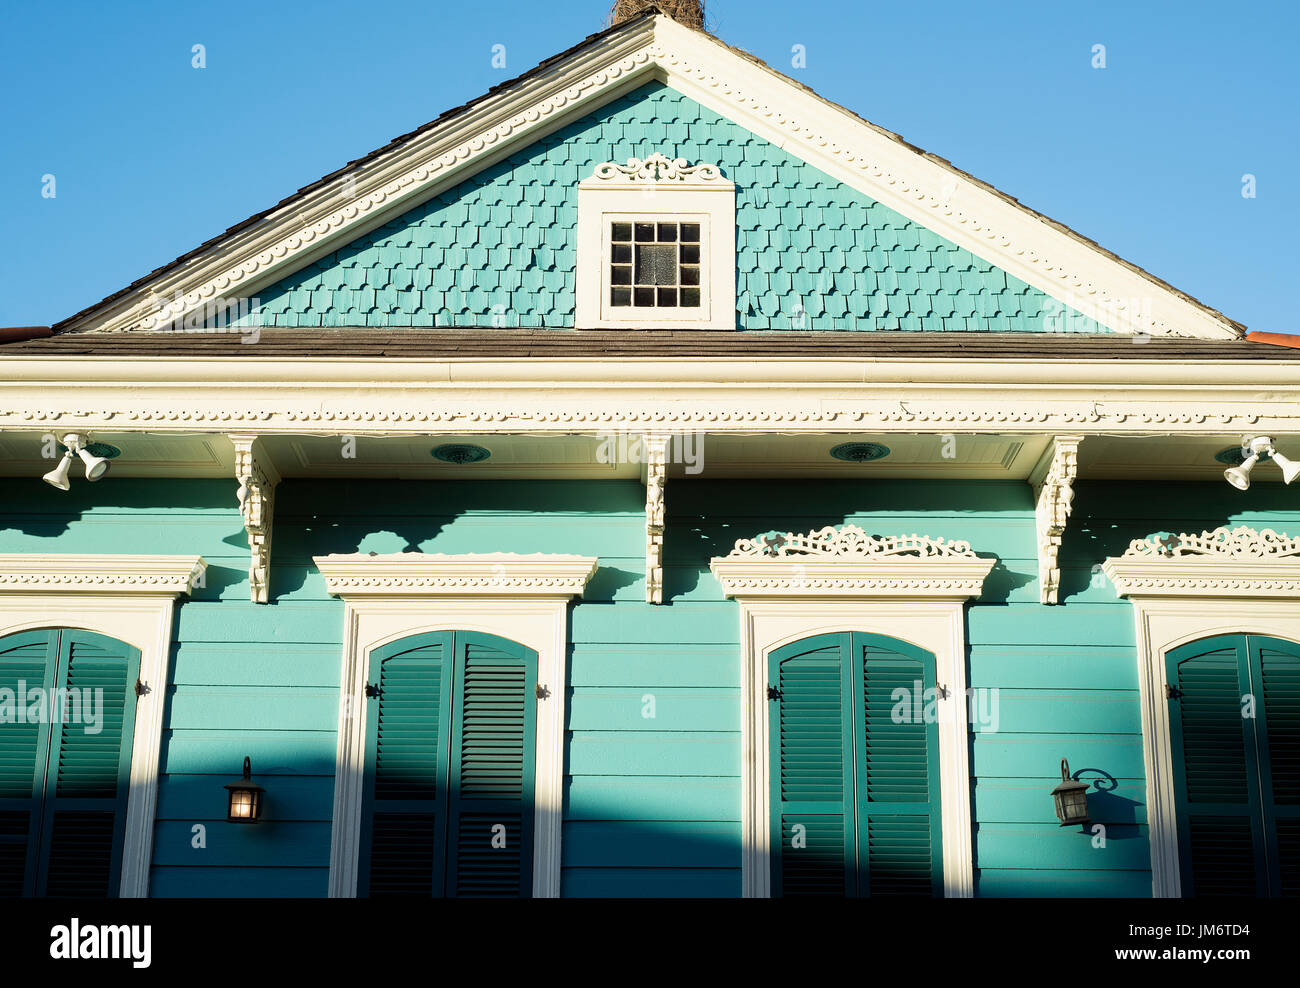 A shotgun style house in the French Quarter of New Orleans. - Stock Image